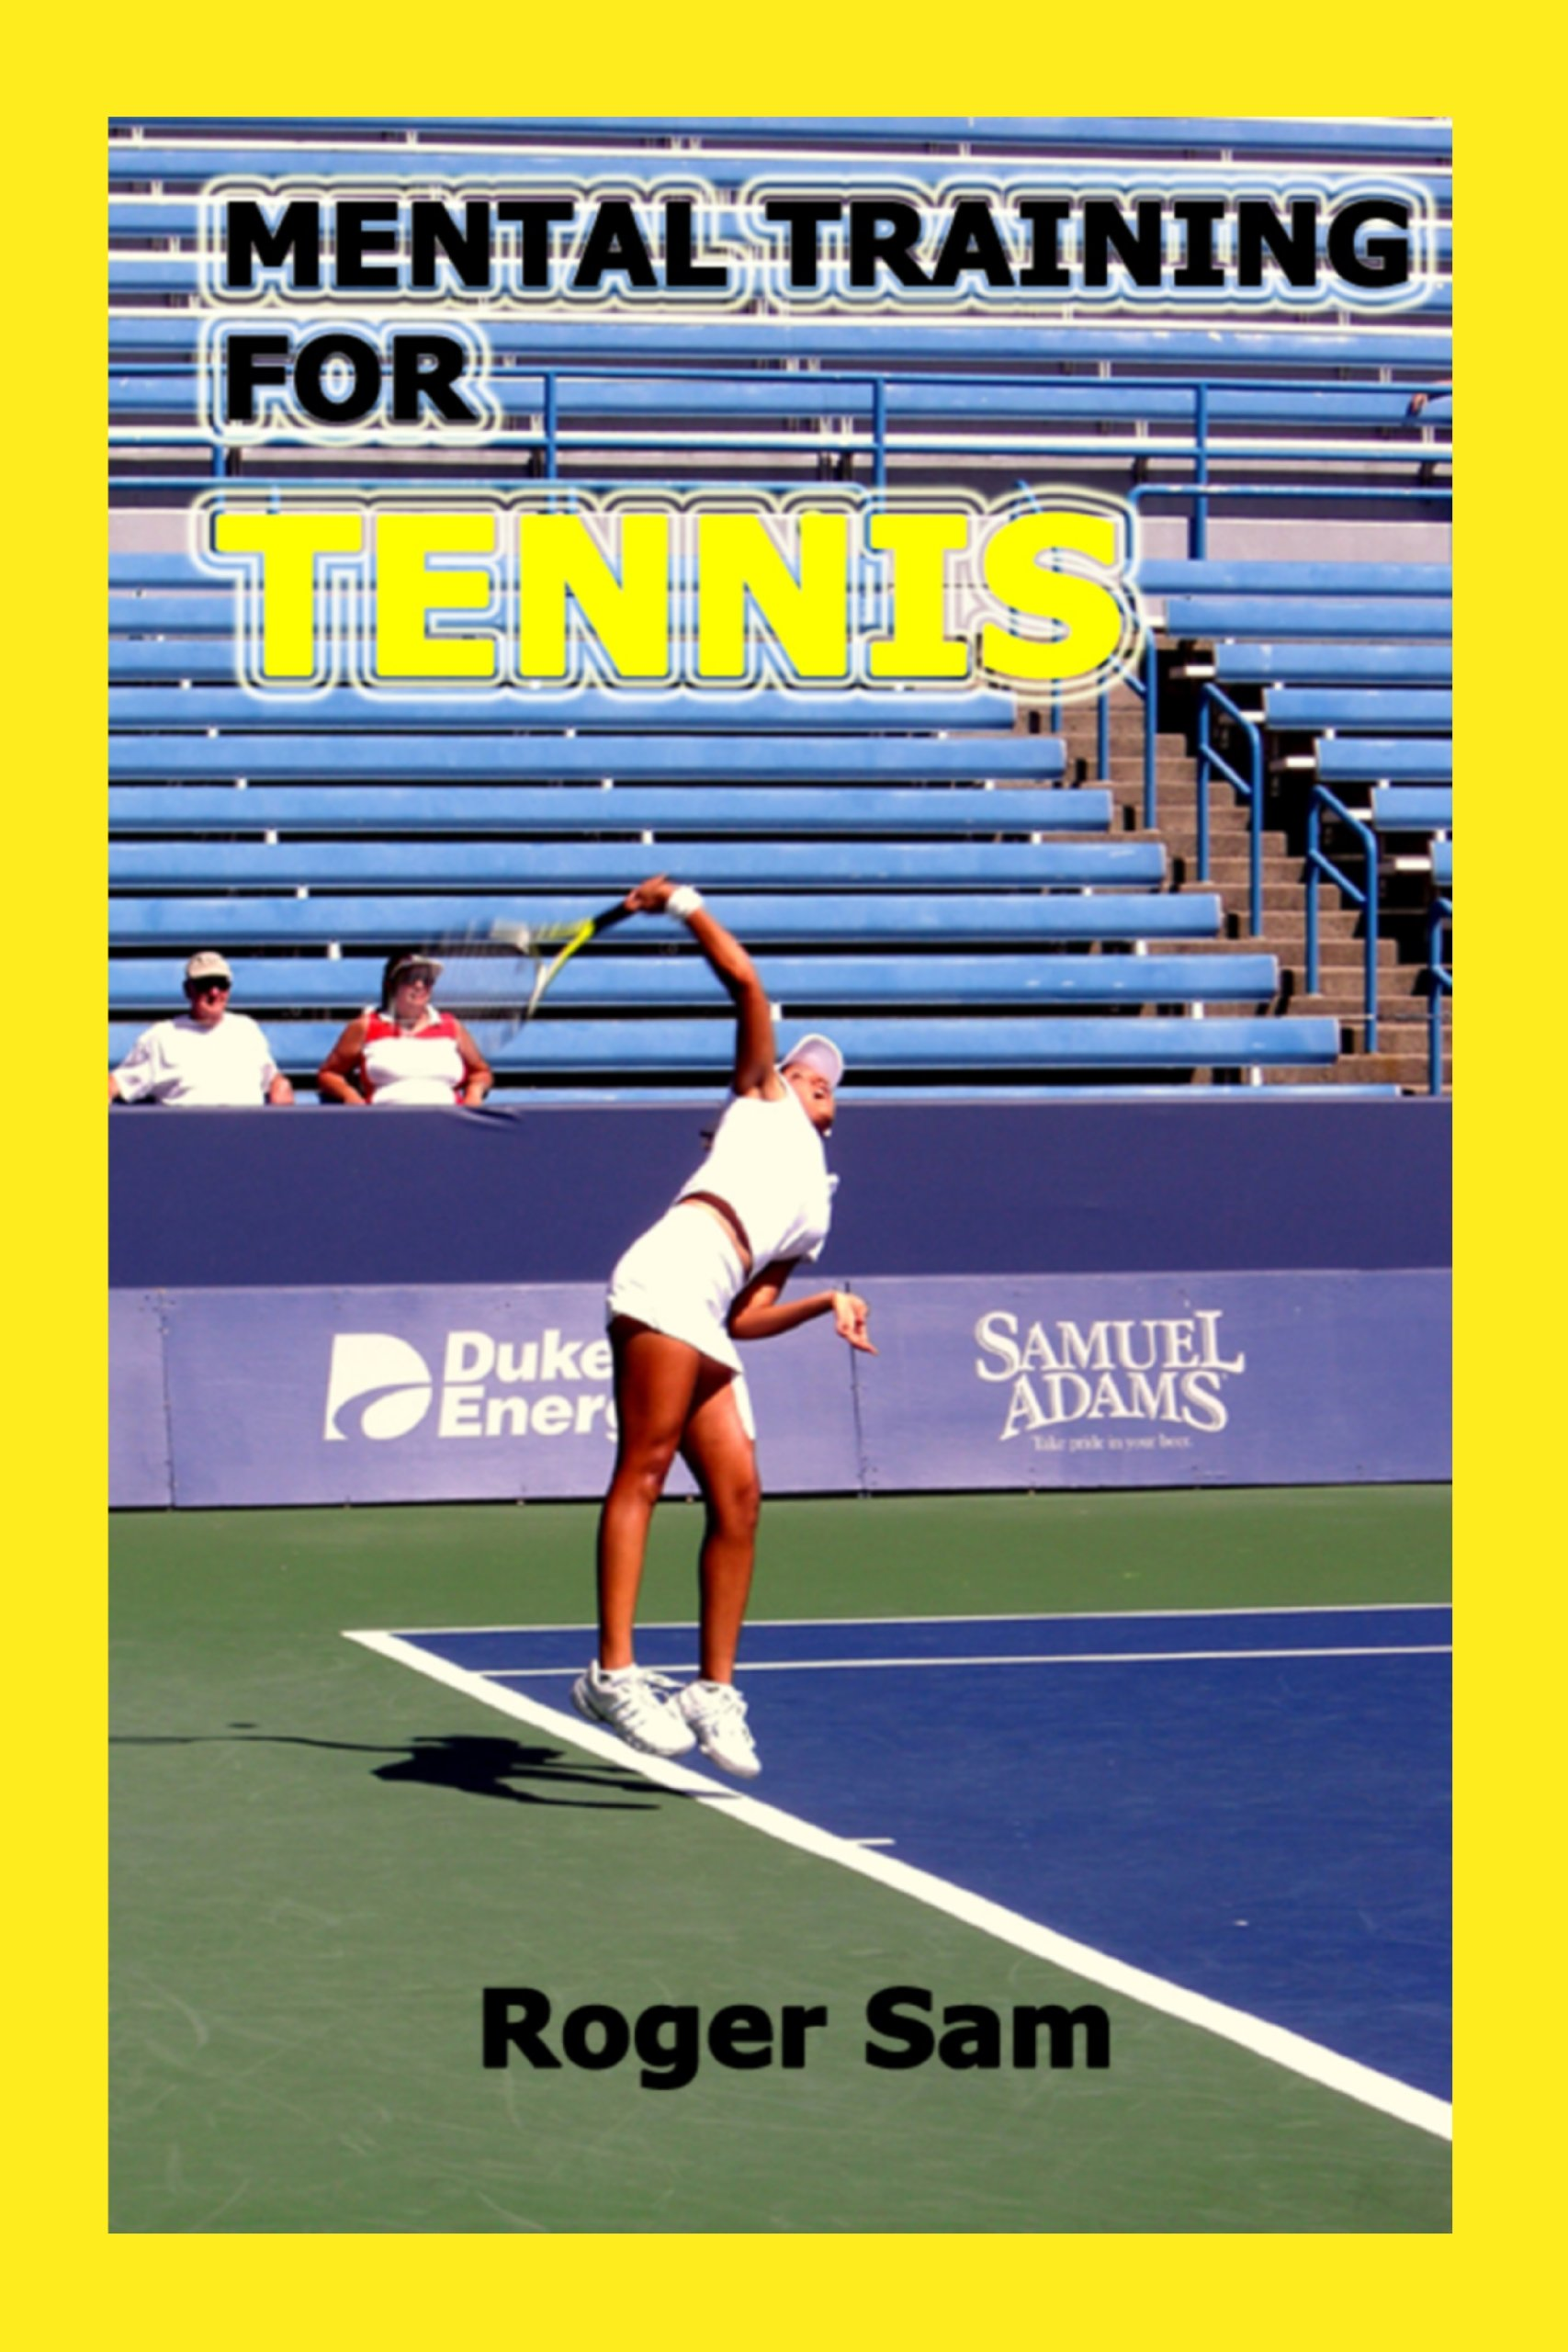 Image OfMental Training For Tennis - Using Sports Psychology And Eastern Spiritual Practices As Tennis Training